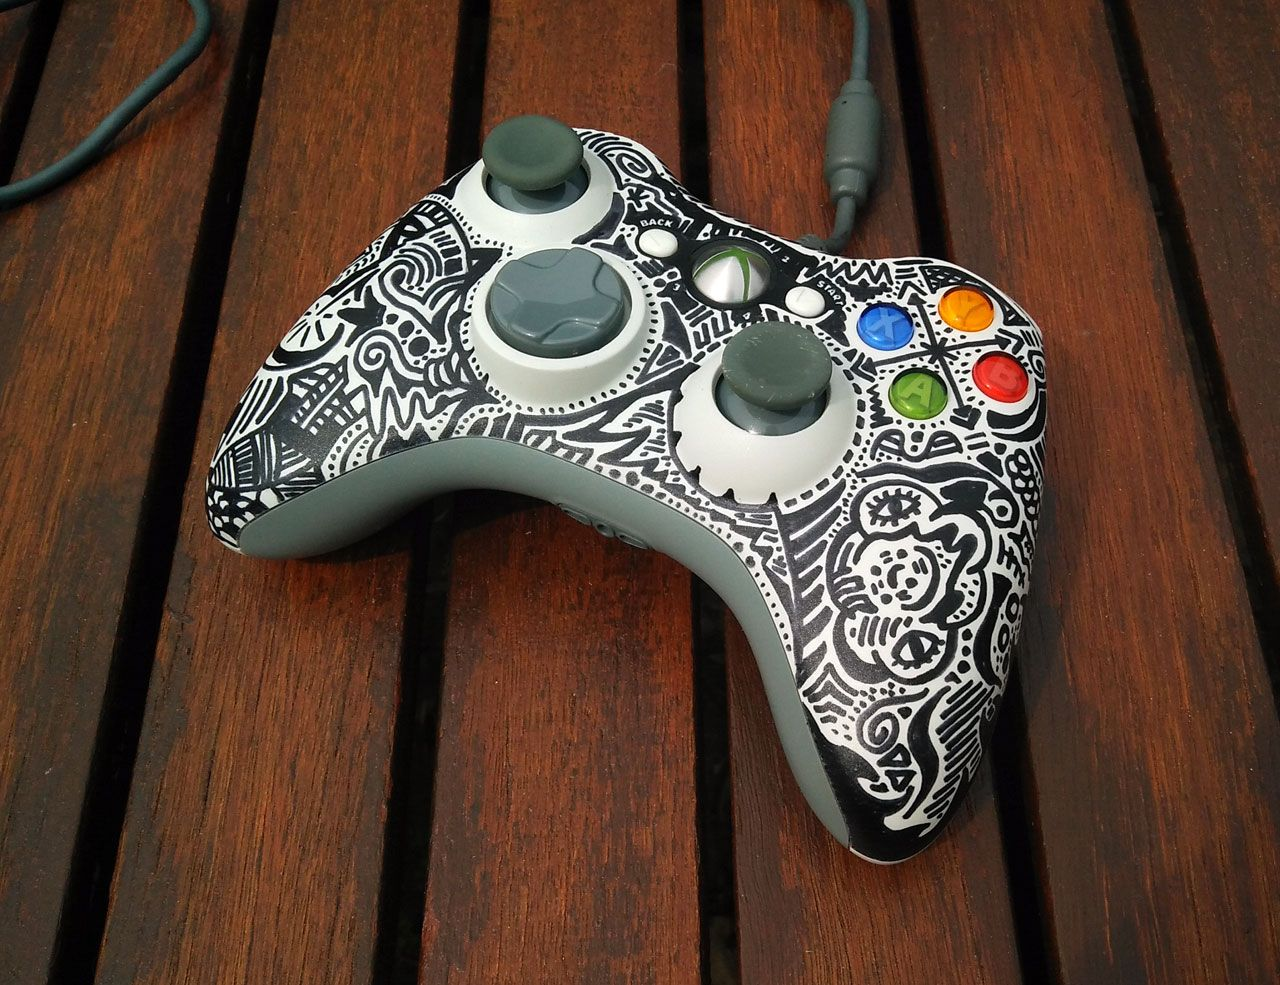 I took my 360 controller apart to clean it and decided to